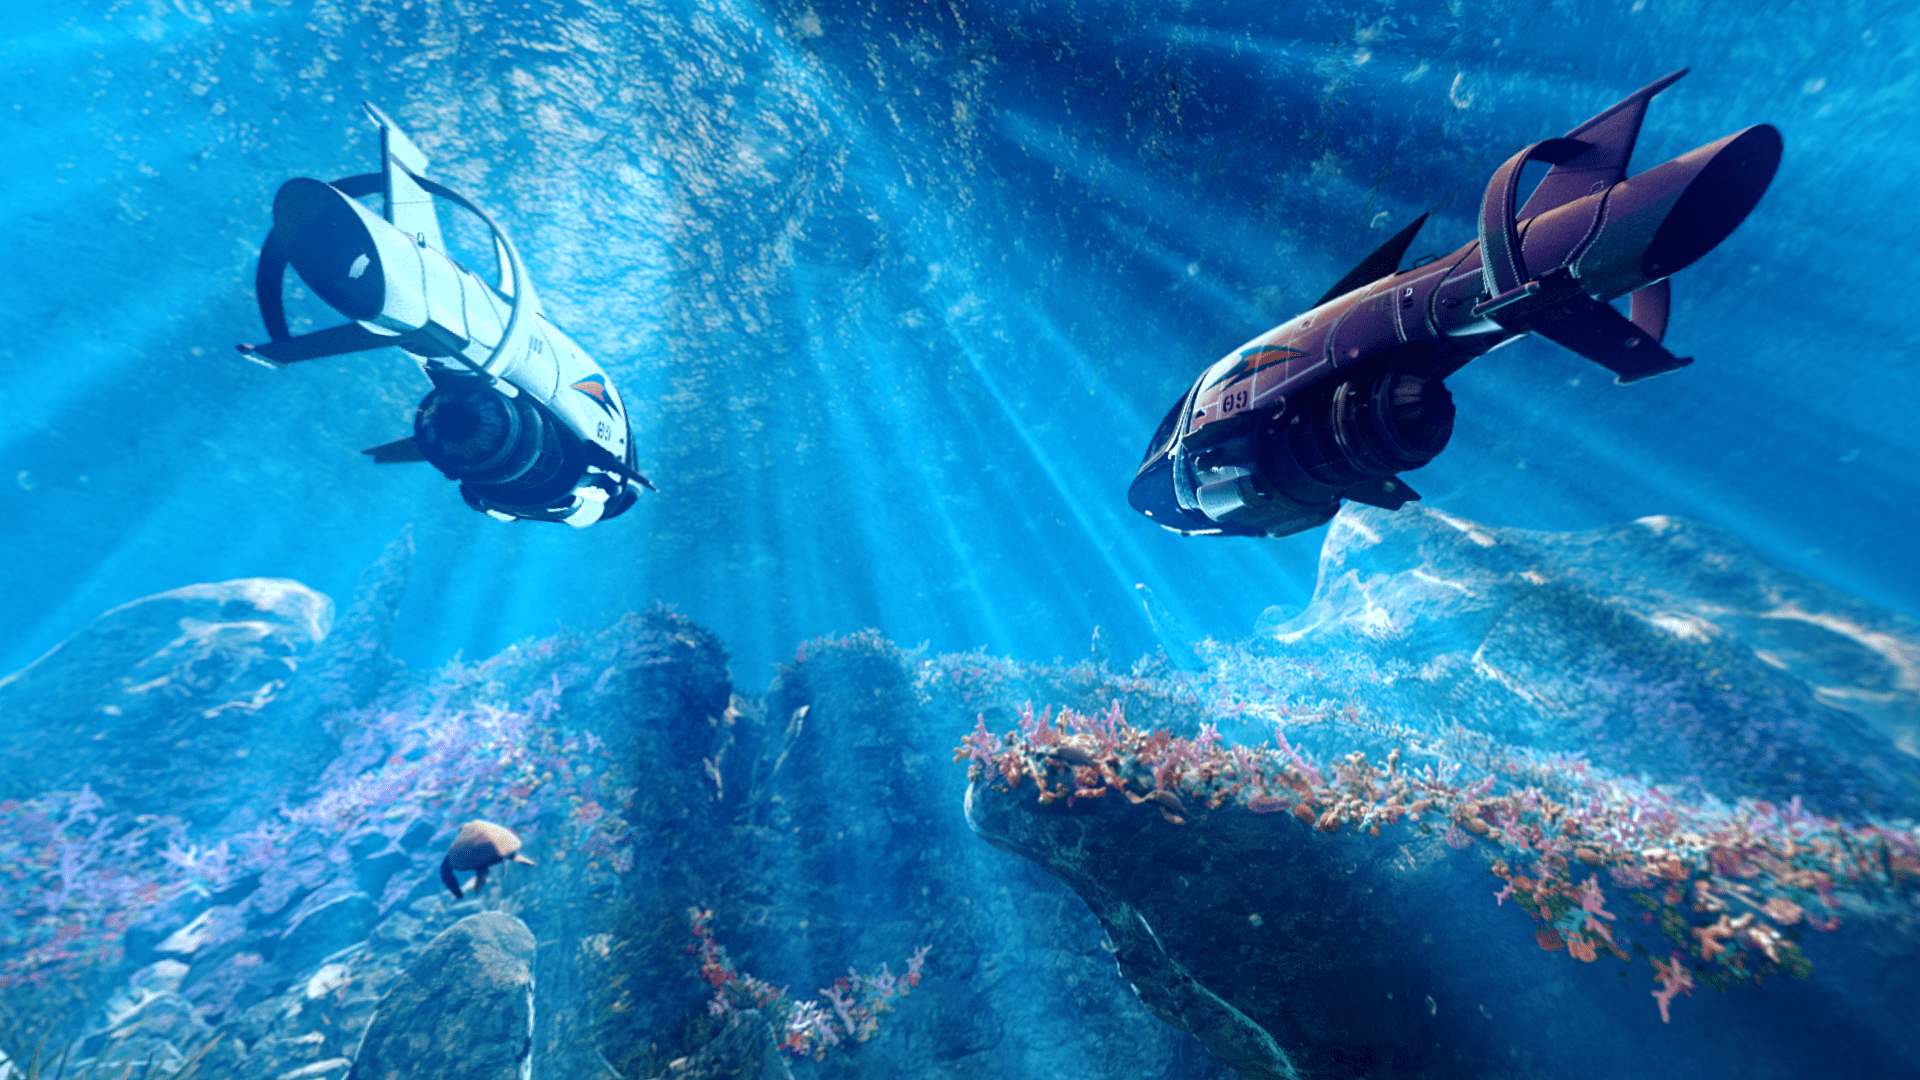 SeaWorld's 2017 attractions are intriguing